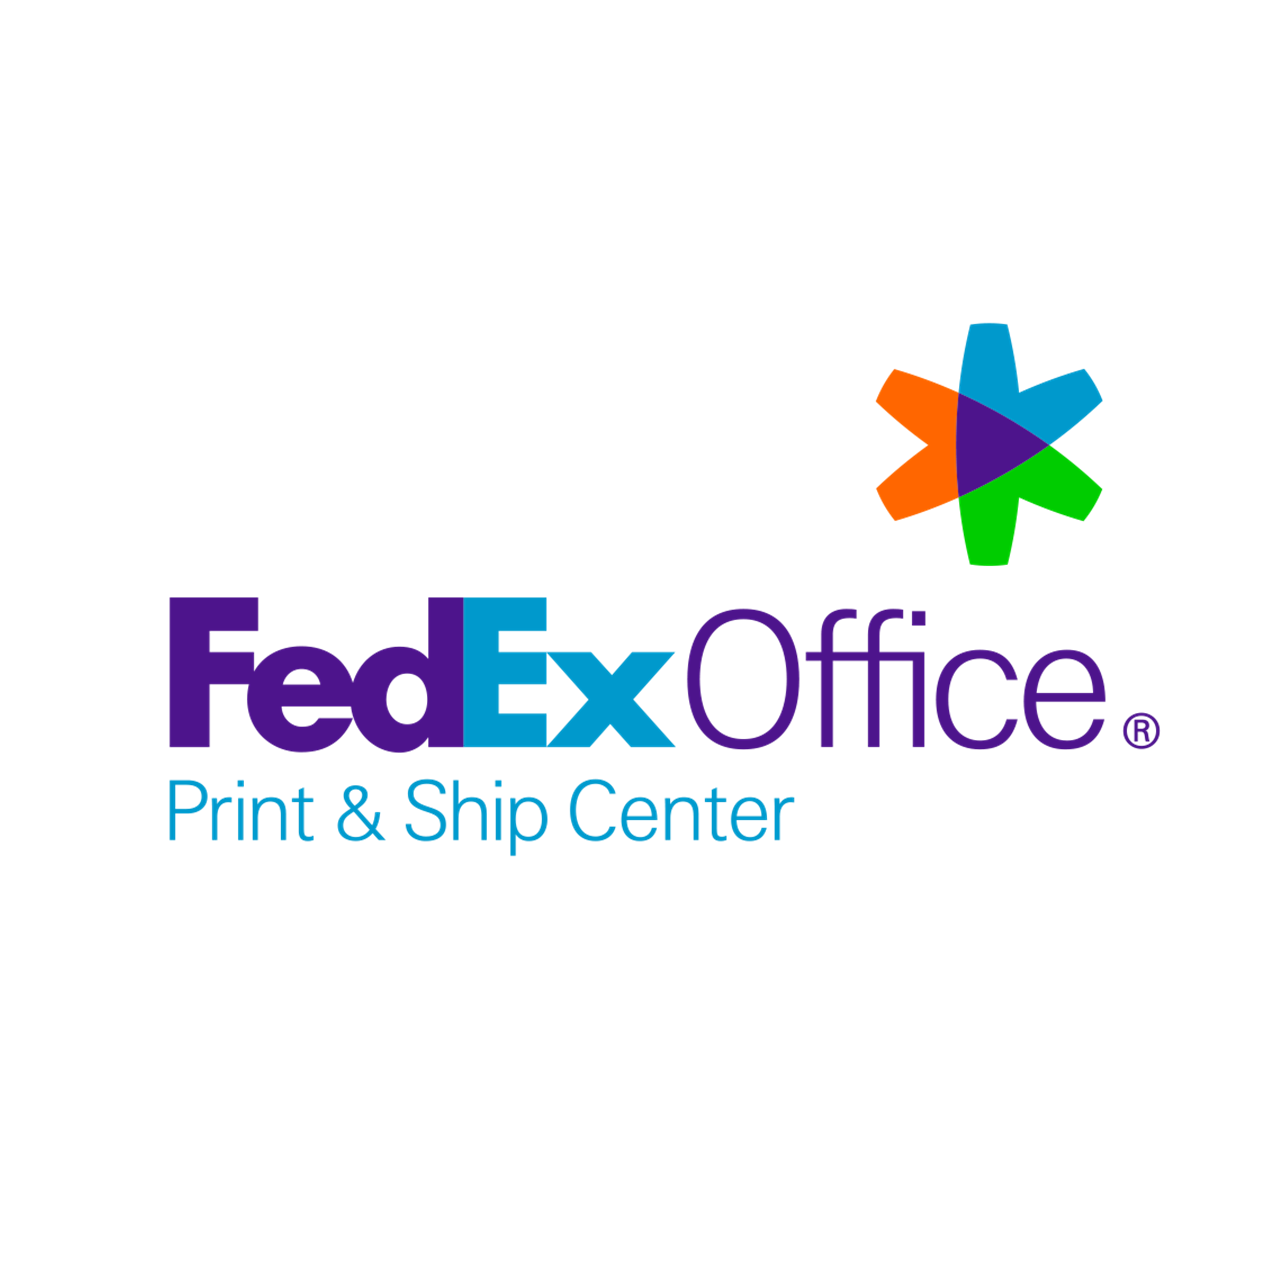 FedEx Office Print & Ship Center - Orlando, FL 32818 - (407)523-0202 | ShowMeLocal.com